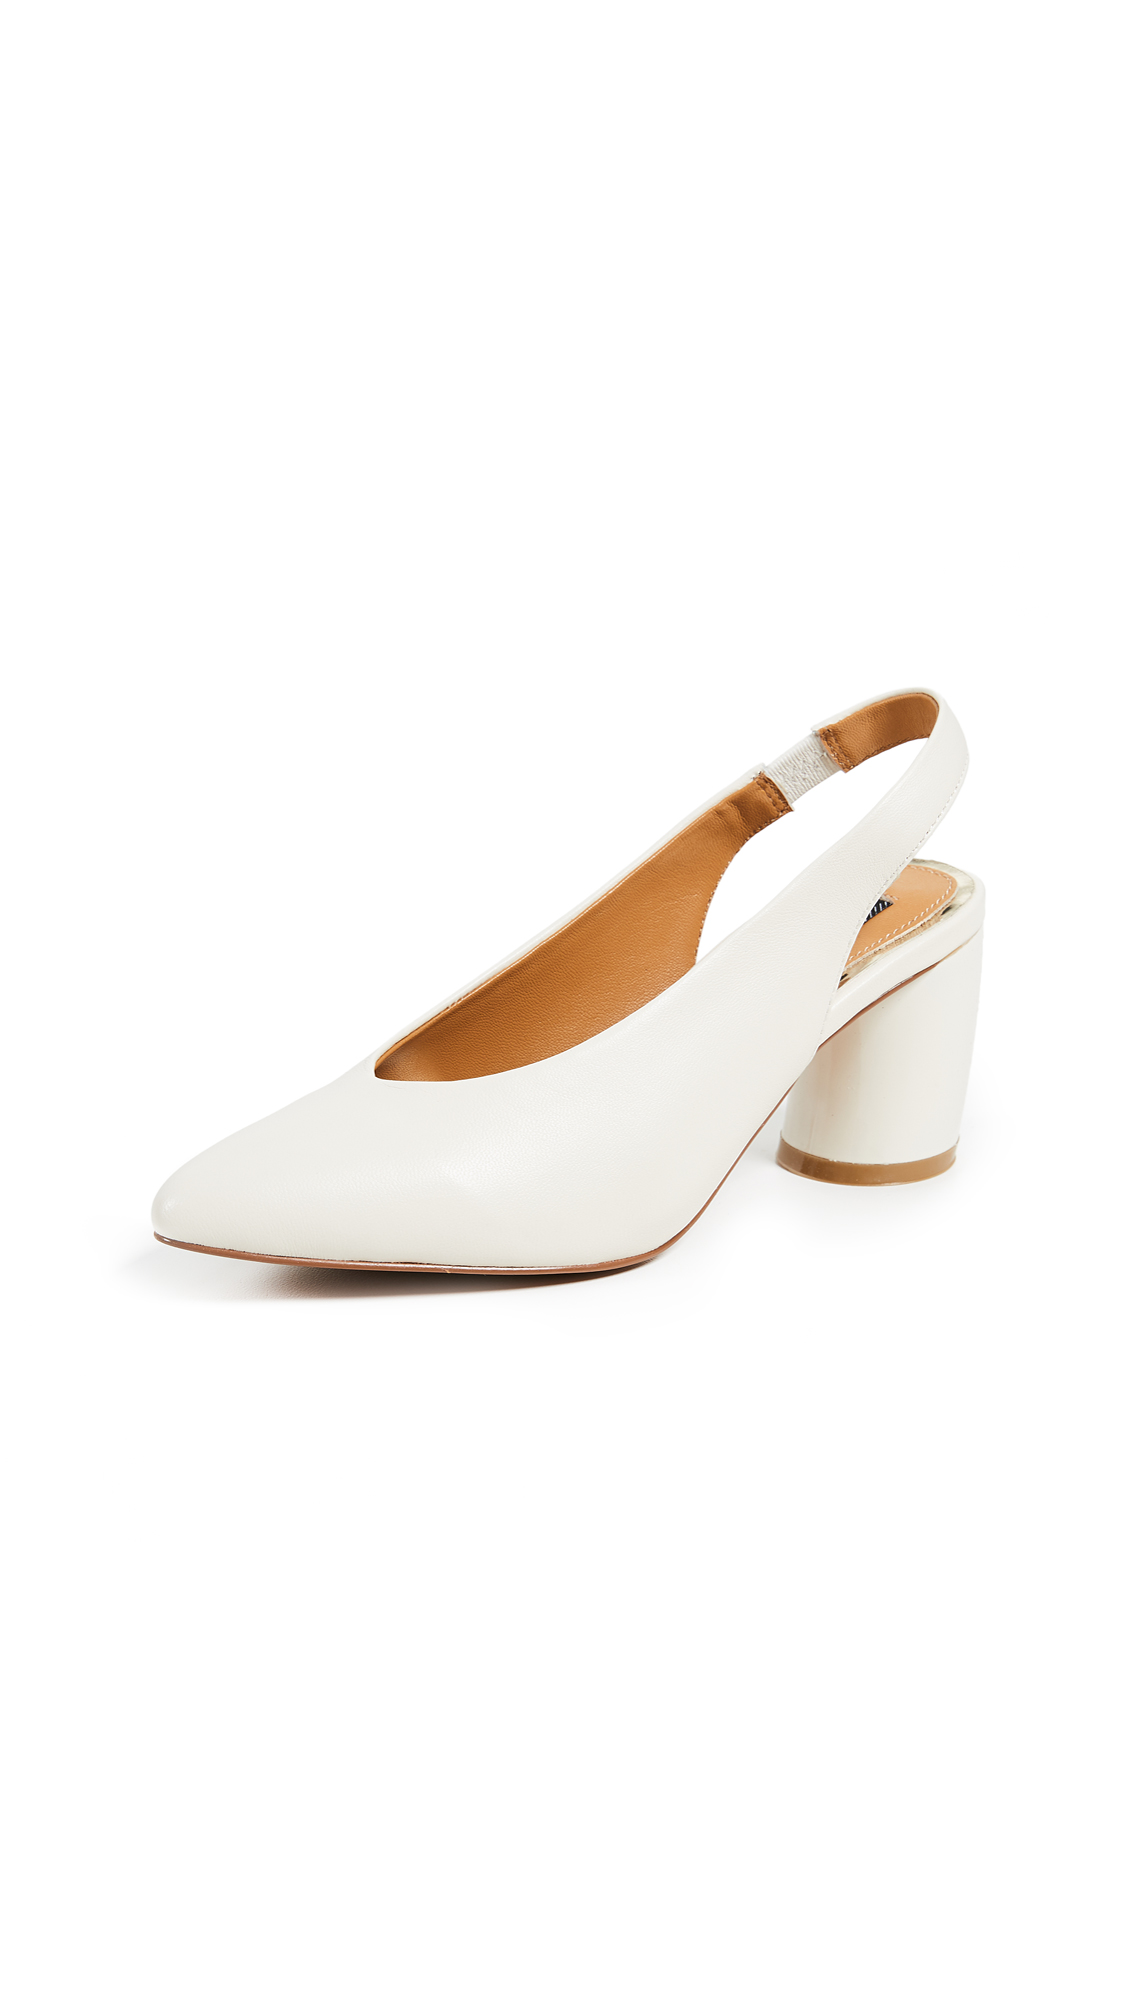 JAGGAR Tempt Curved Heel Pumps - Chalk